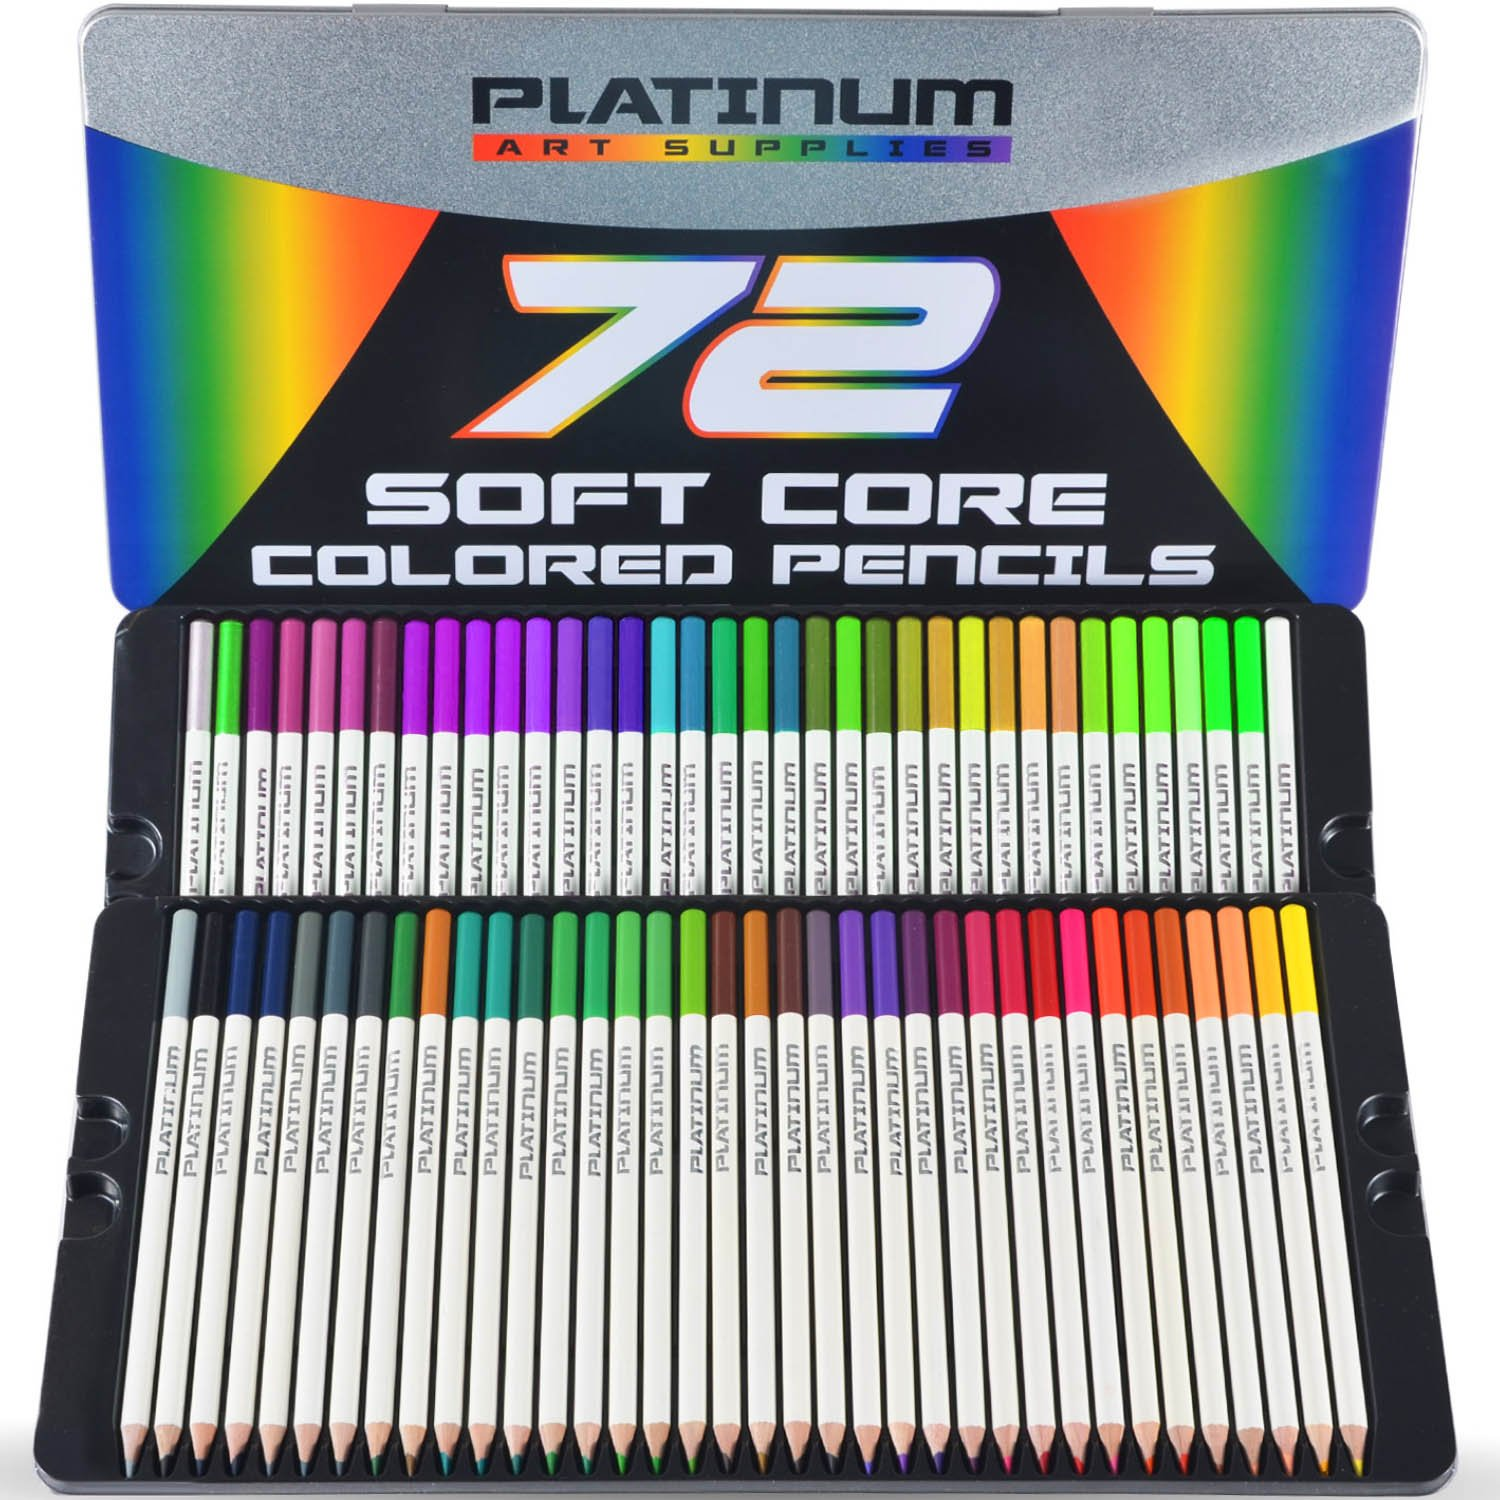 Premium Colored Pencils (SET OF 72) Soft Core Lead Ultra Smooth in 72 Individual Colors (No Duplicates) in a Beautiful Tin Case - Pre-Sharpened - Highest Quality - Perfect for Artists & Beginners